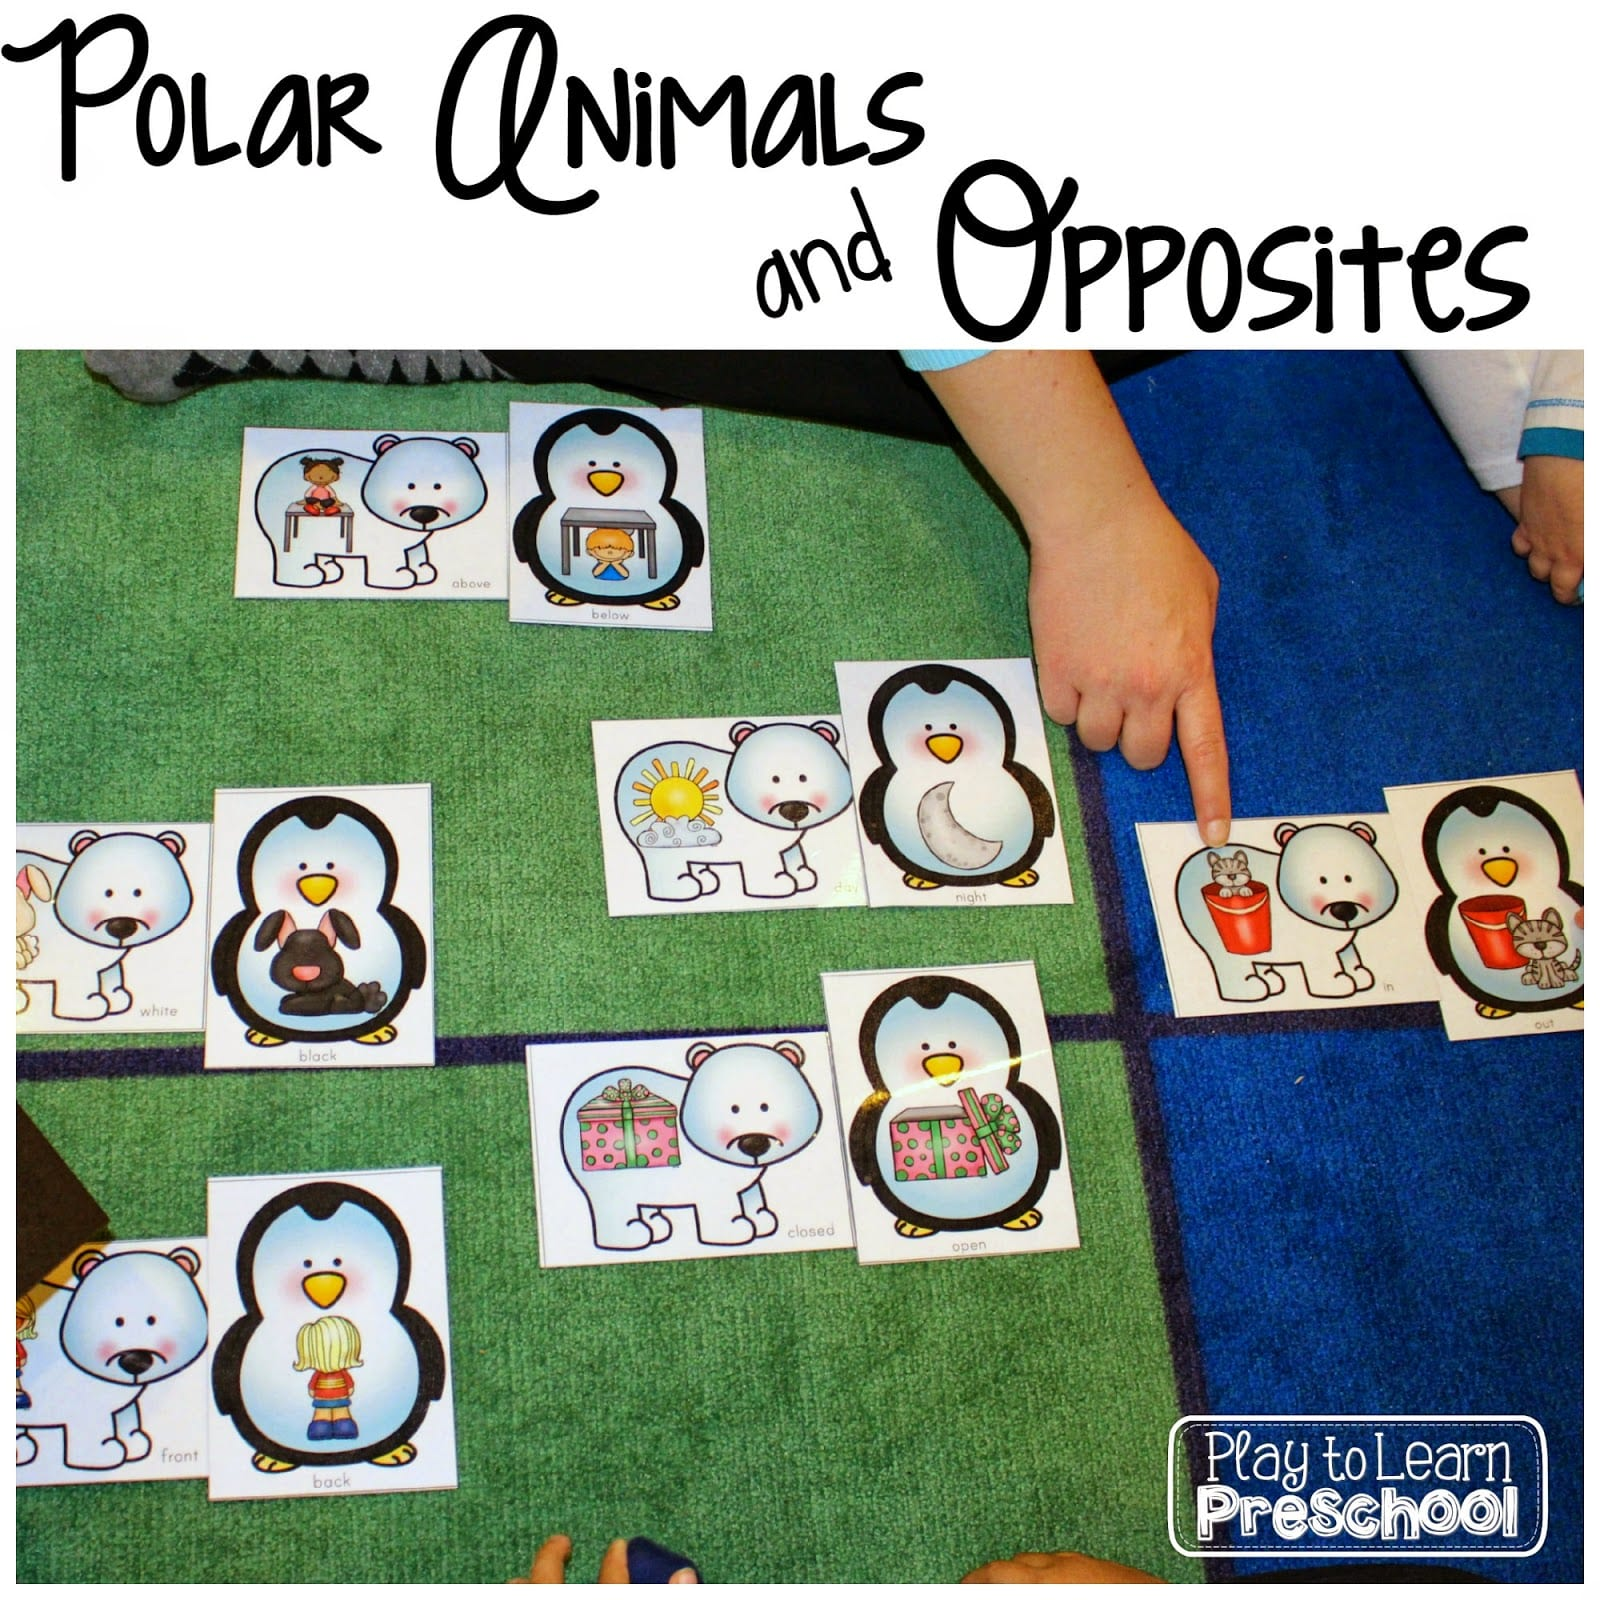 Animal Opposites Friends Alphaprints Polar Animals Unit Play To Learn